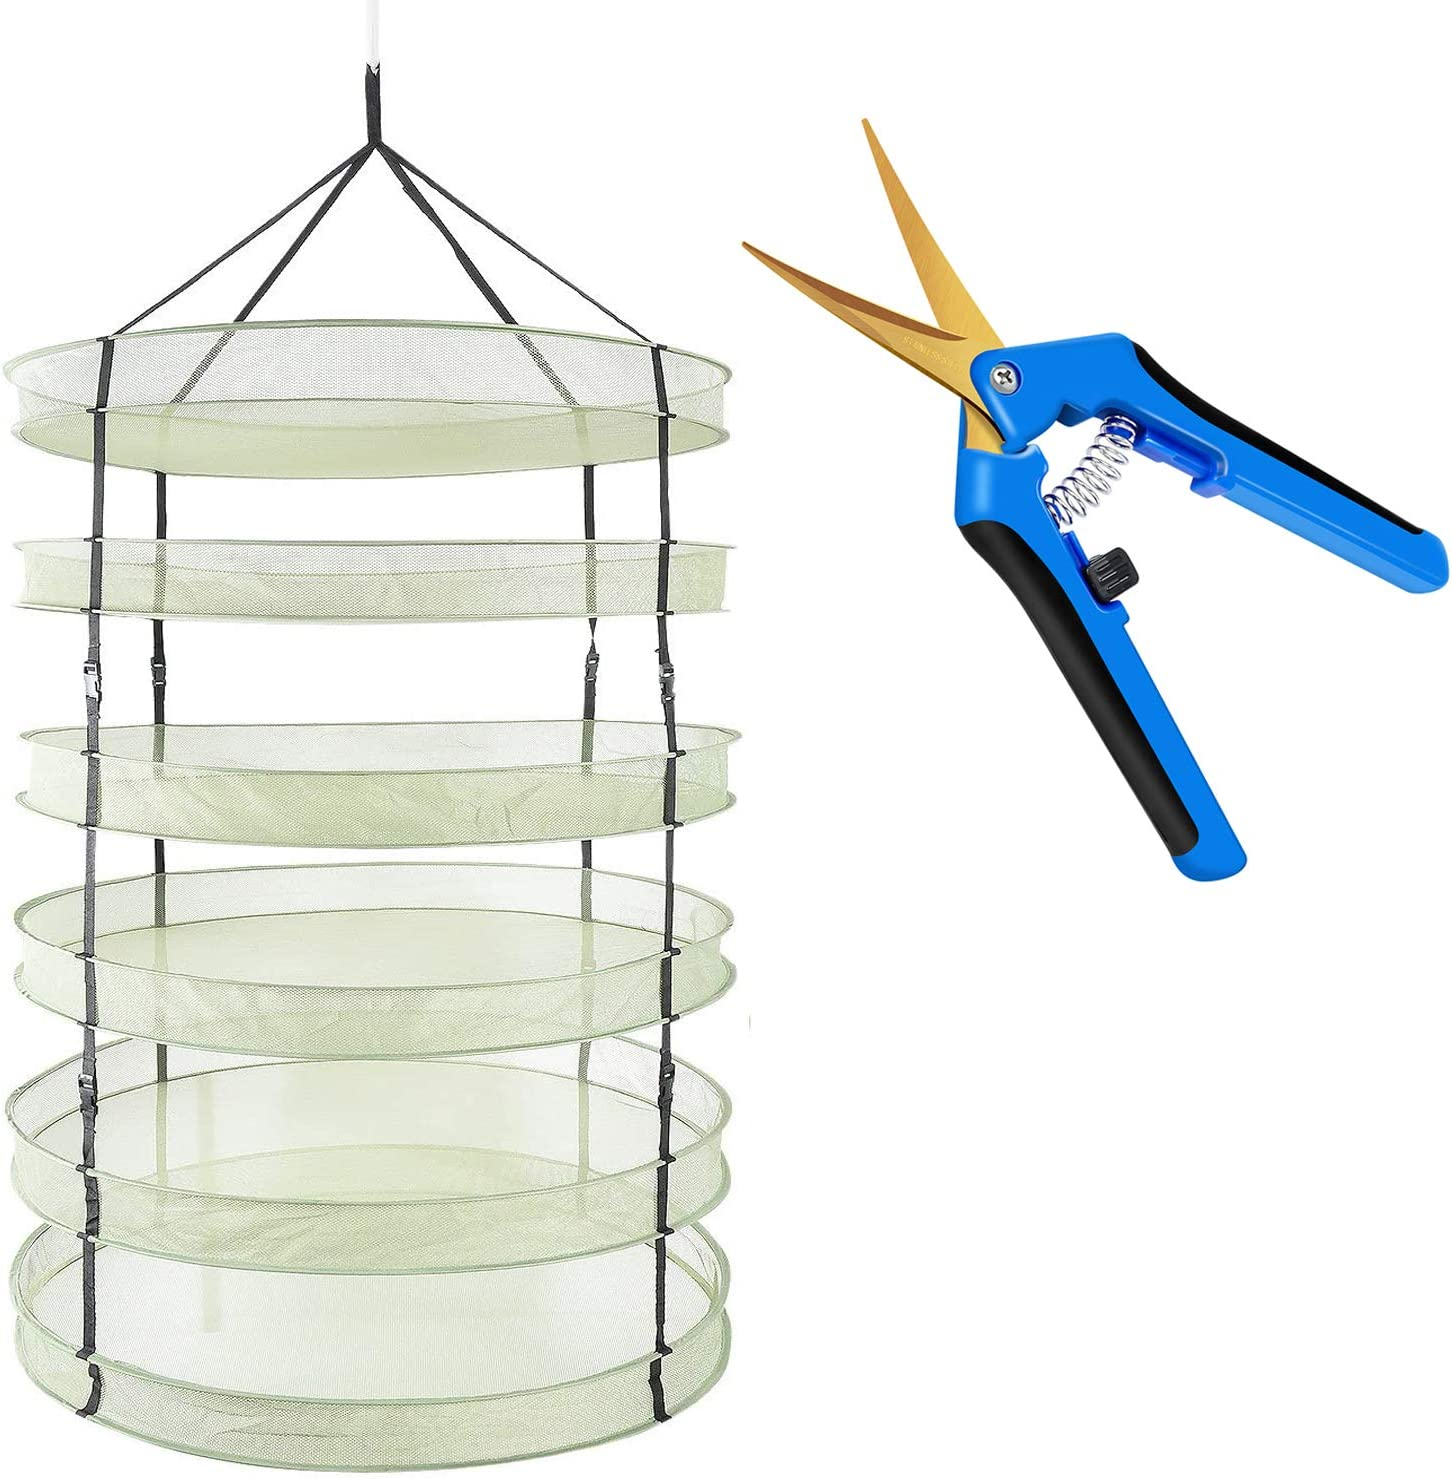 "iPower 3ft 6 Layers Clip on Hanging Collapsible Mesh Hydroponics Herb Drying Rack Net with 6.5"" Gardening Hand Pruner with Titanium Coated, 6layers+Blue, Curved Precision Blades,Green&Blue"